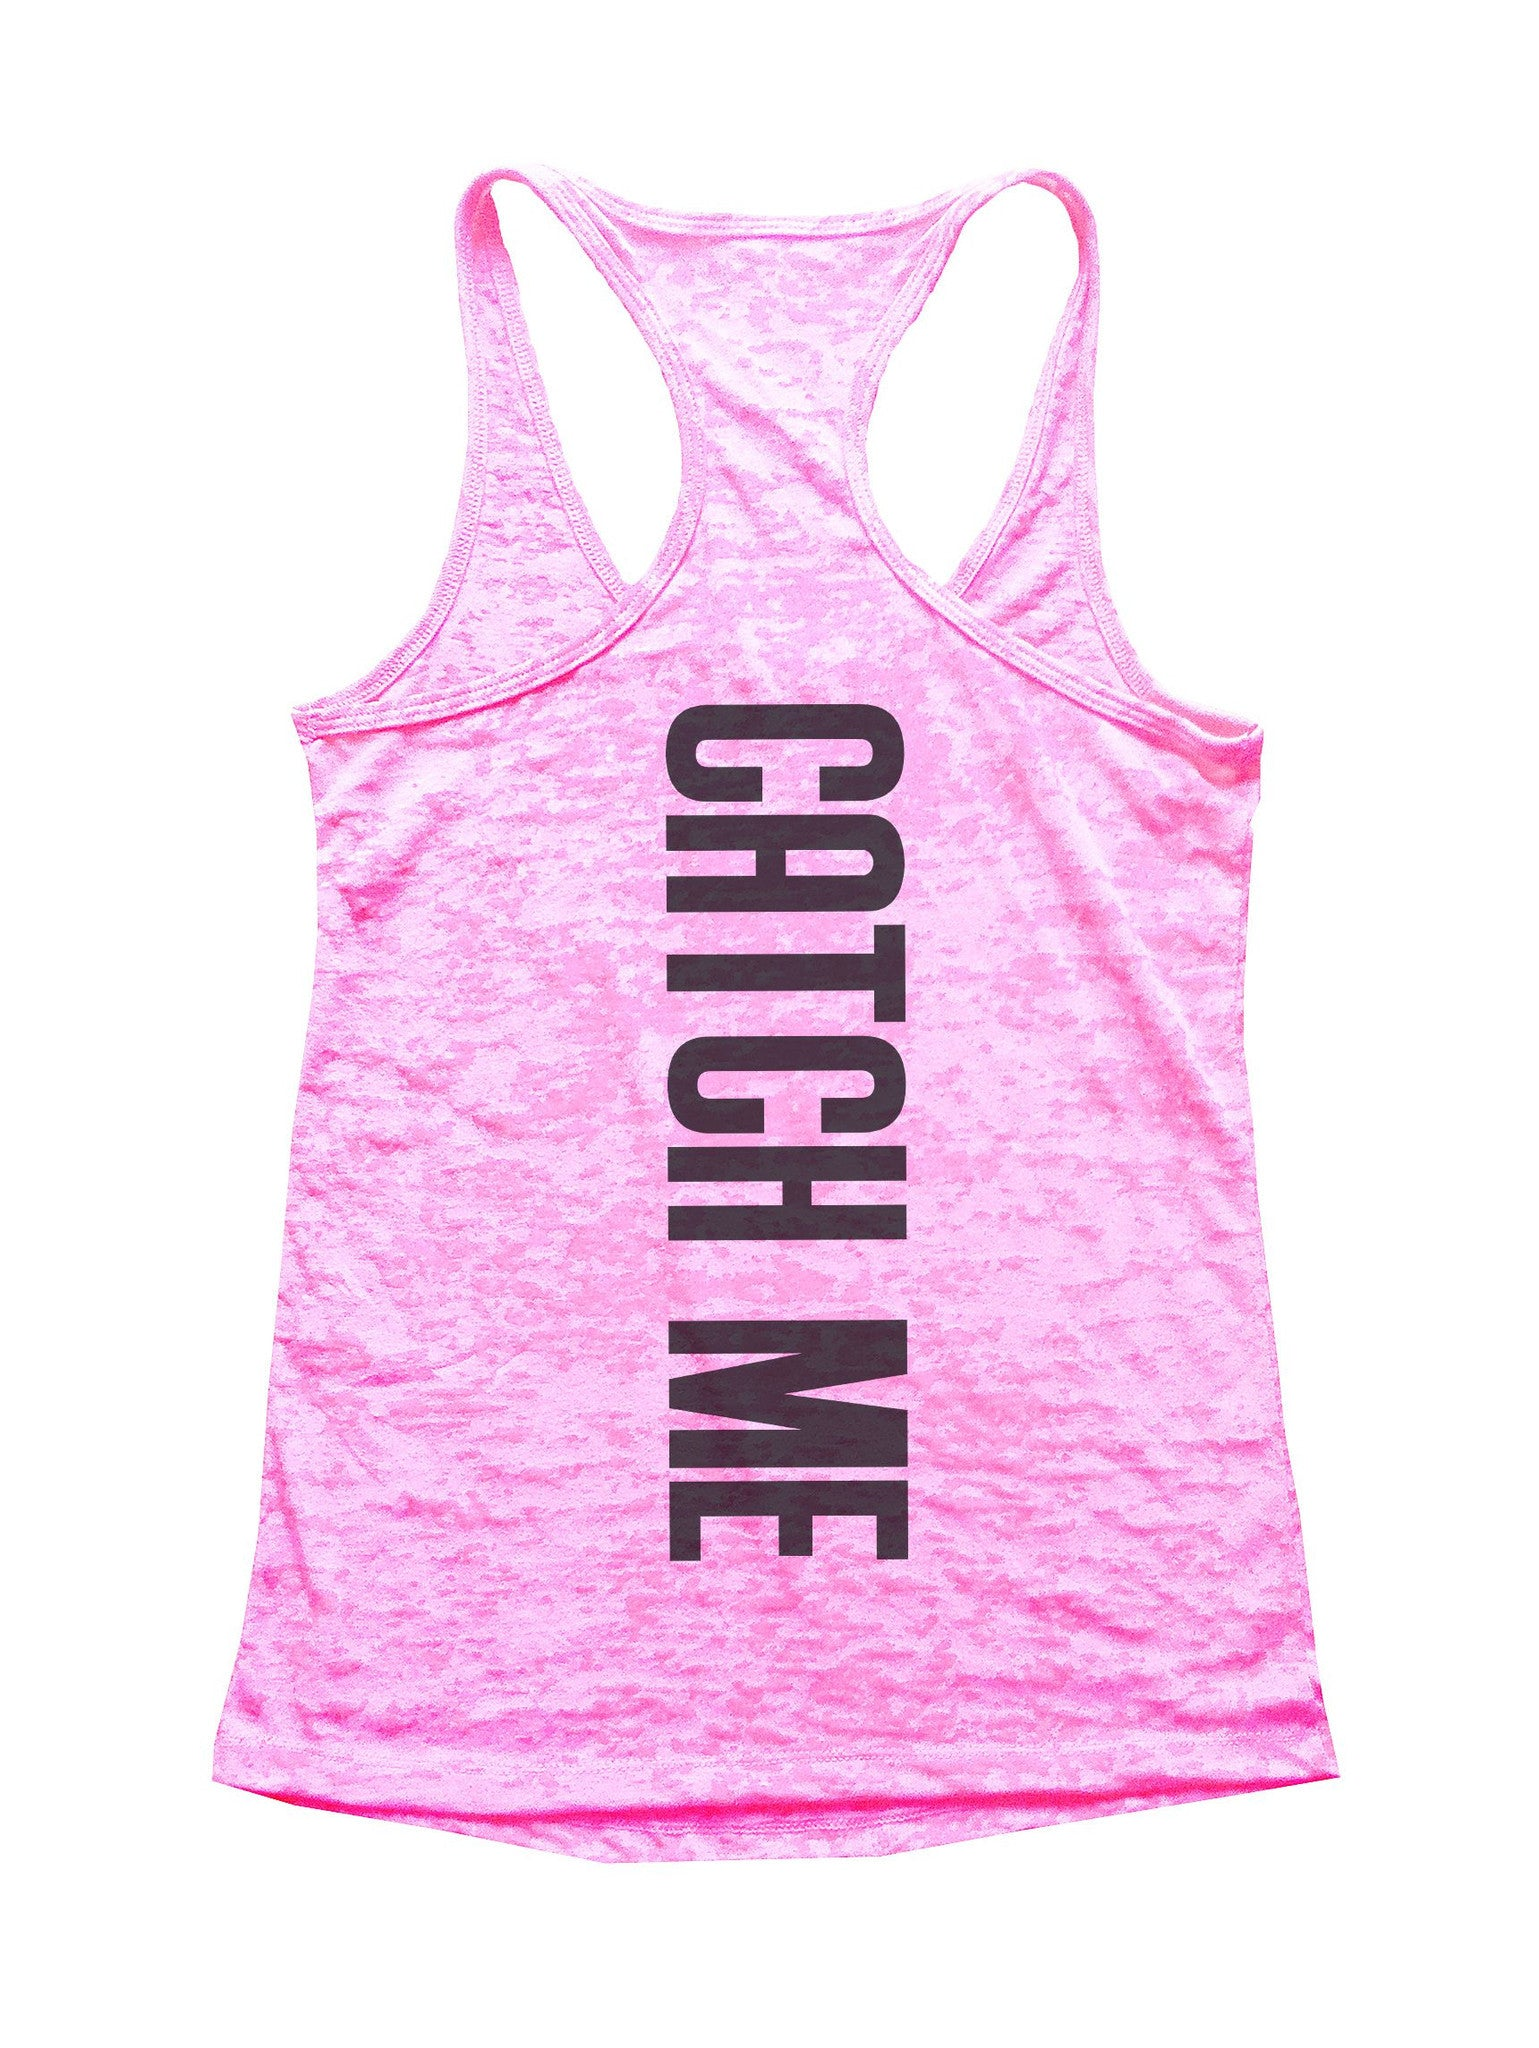 Catch Me Burnout Tank Top By BurnoutTankTops.com - 678 - Funny Shirts Tank Tops Burnouts and Triblends  - 2